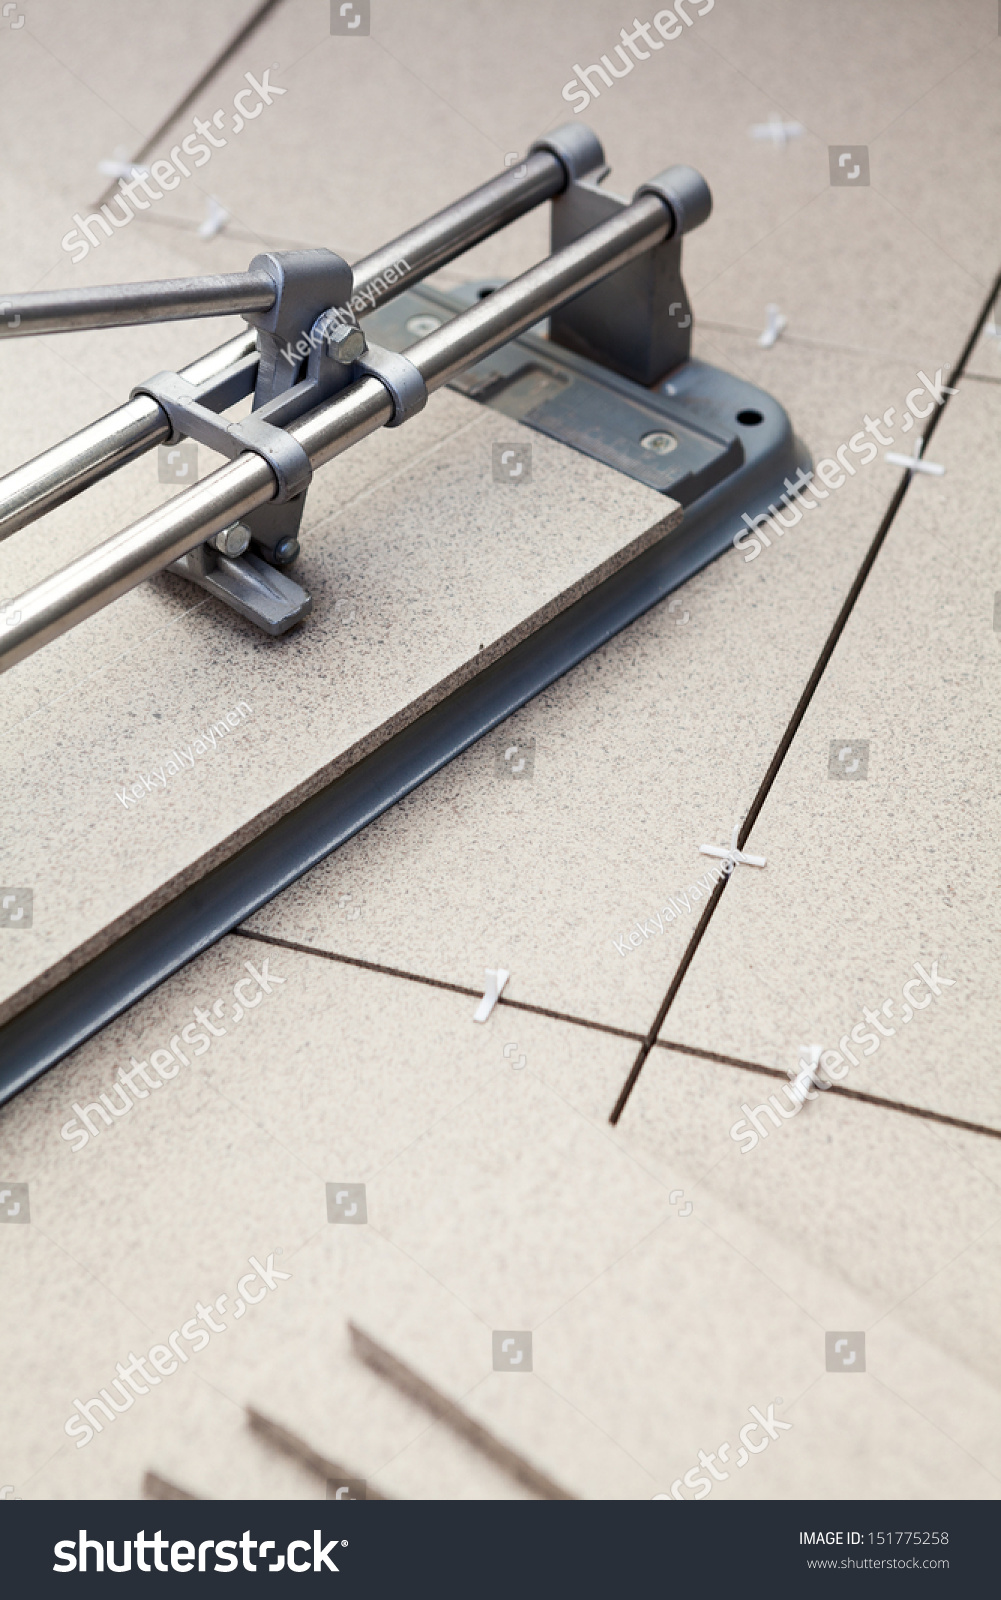 Cutting tiles tilecutter on floor when stock photo 151775258 cutting tiles with tile cutter on floor when laying floor dailygadgetfo Gallery